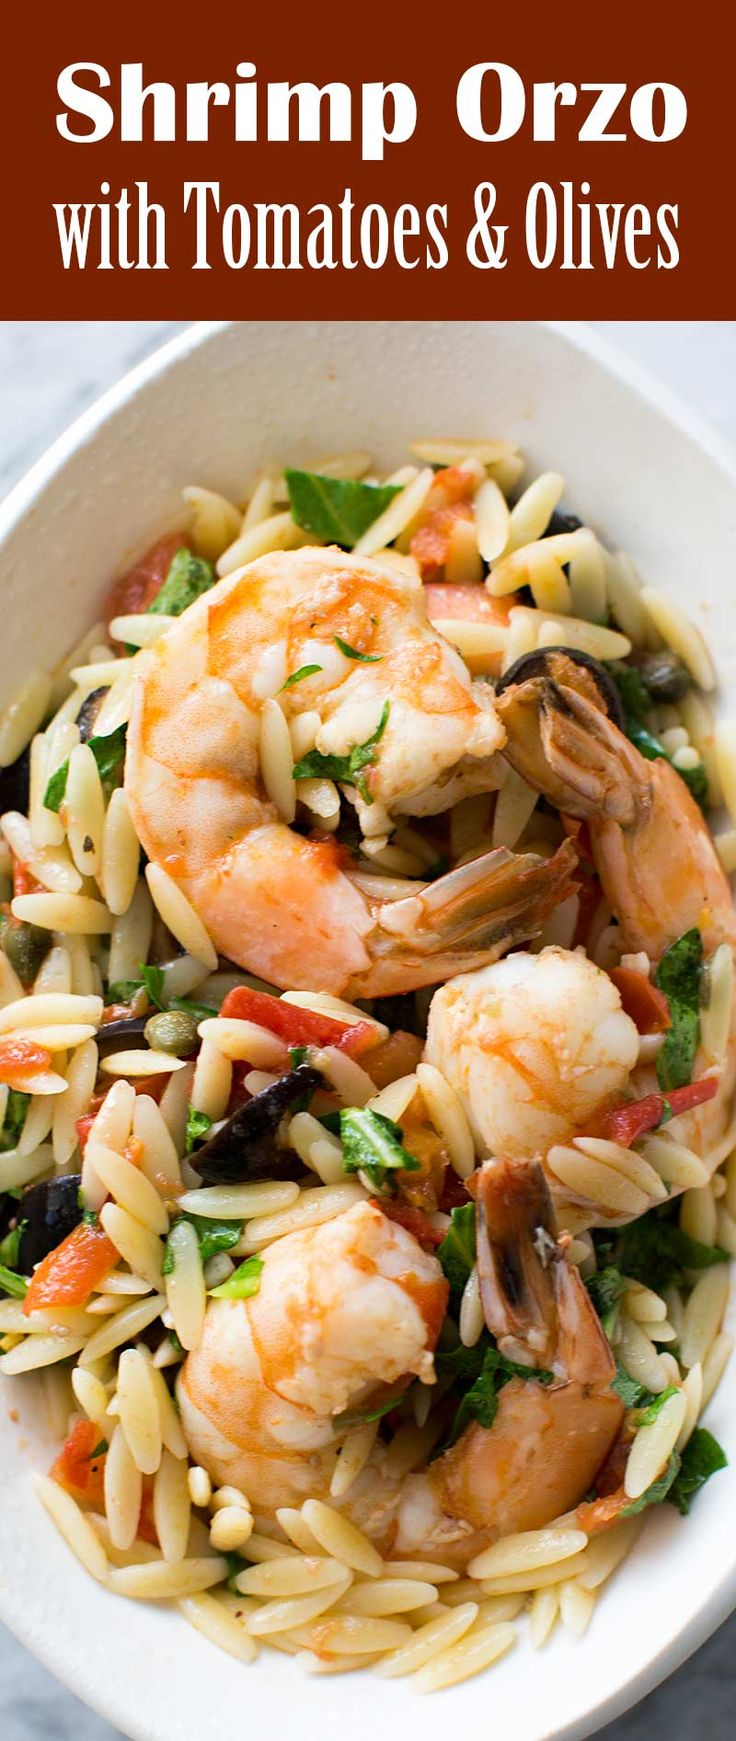 Quick and EASY Shrimp Pasta dinner with black olives, fresh tomatoes, arugula, and orzo pasta!